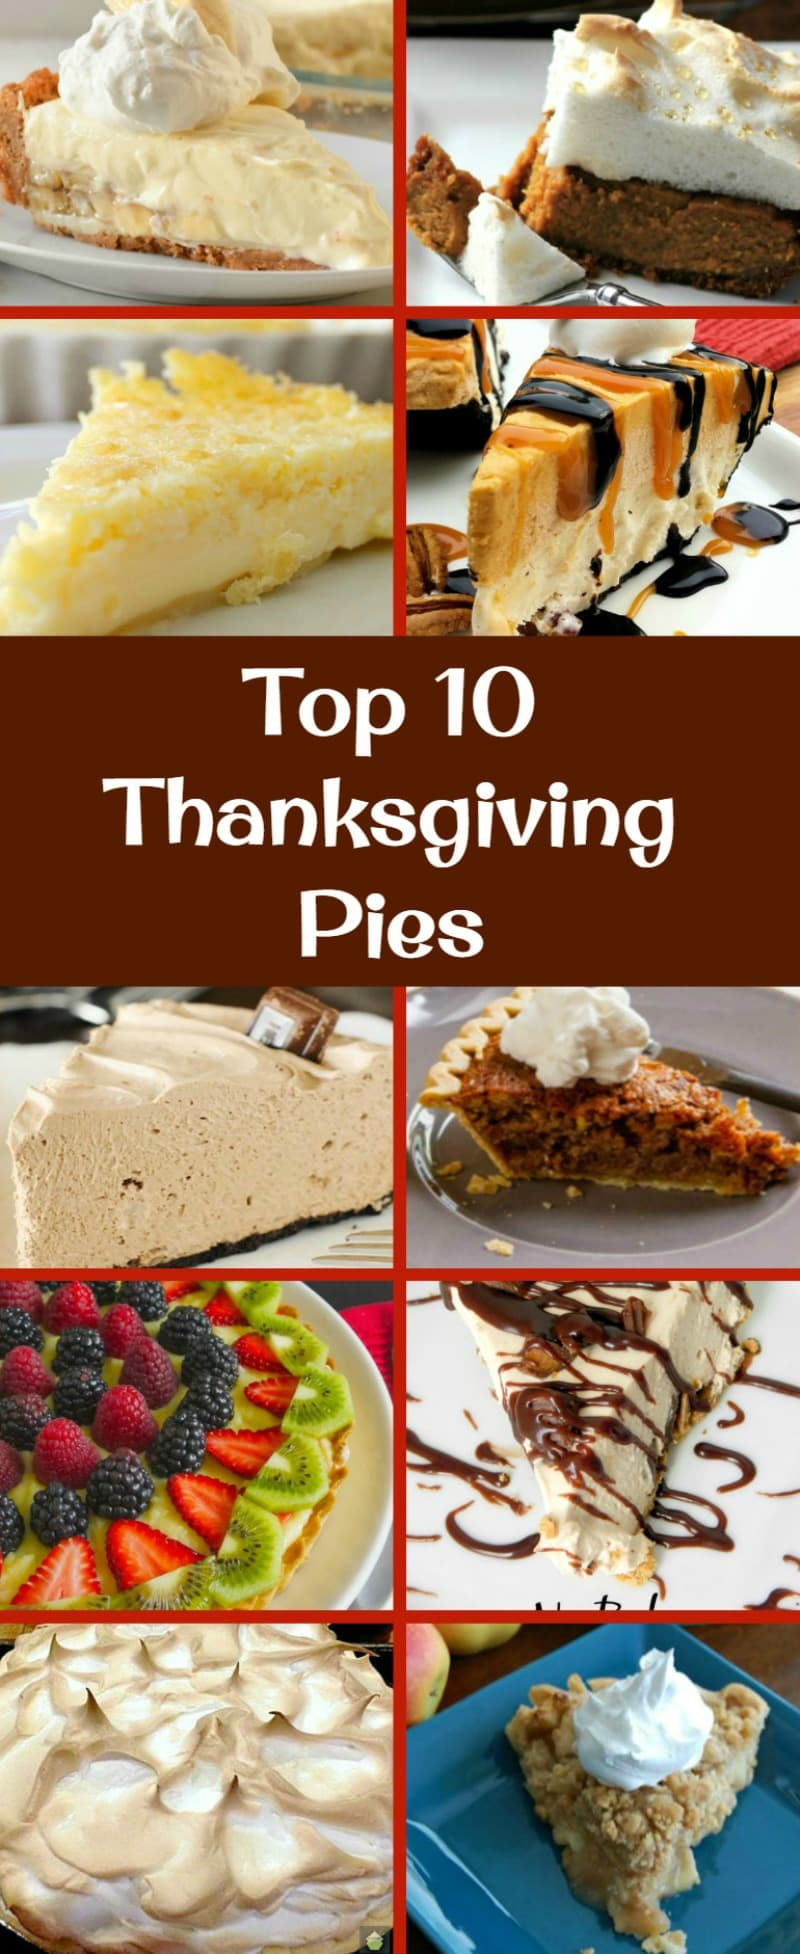 The BEST Top 10 Thanksgiving Dessert Pies. Here's a great selection of the very BEST of the BEST sweet pies you can make for Thanksgiving. Possible to Make ahead too! | Lovefoodies.com